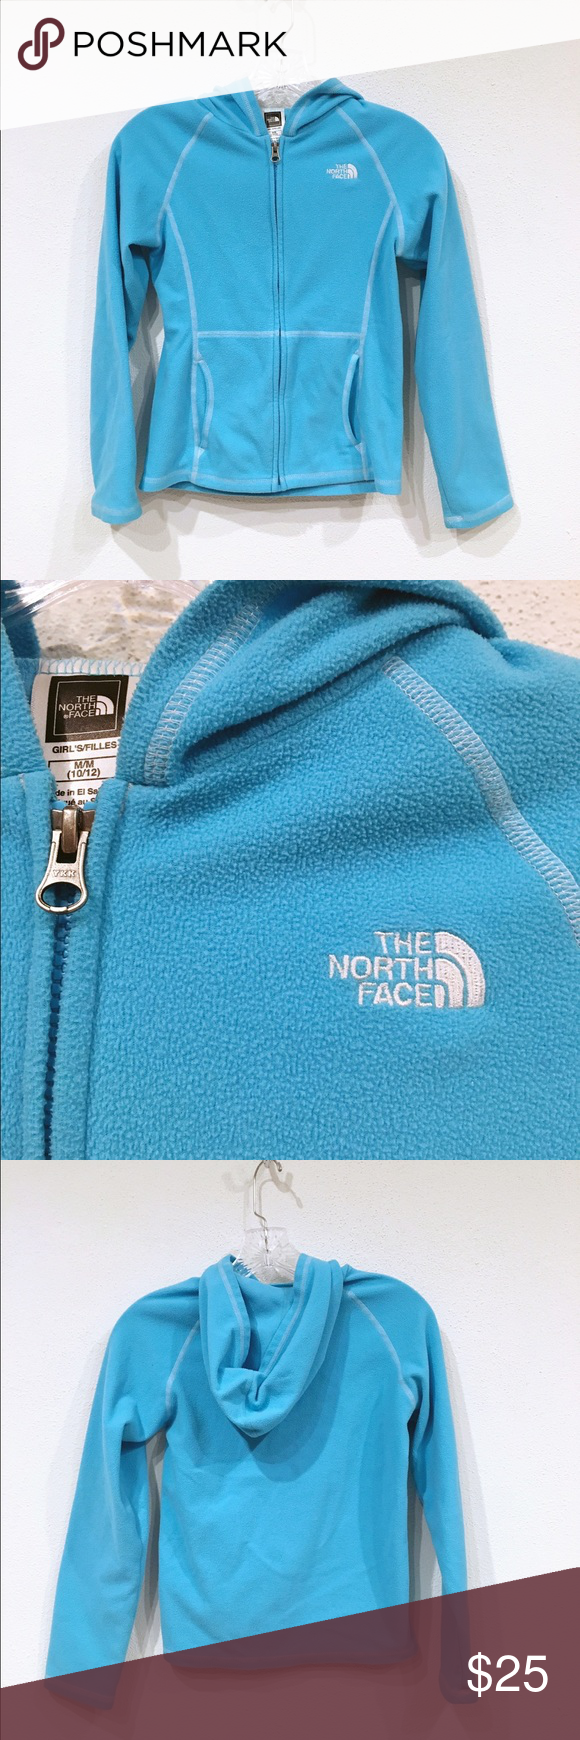 🎉THANKSGIVING SALE🎉 North Face Glacier jacket Excellent condition. No trades. 1005 The North Face Jackets & Coats